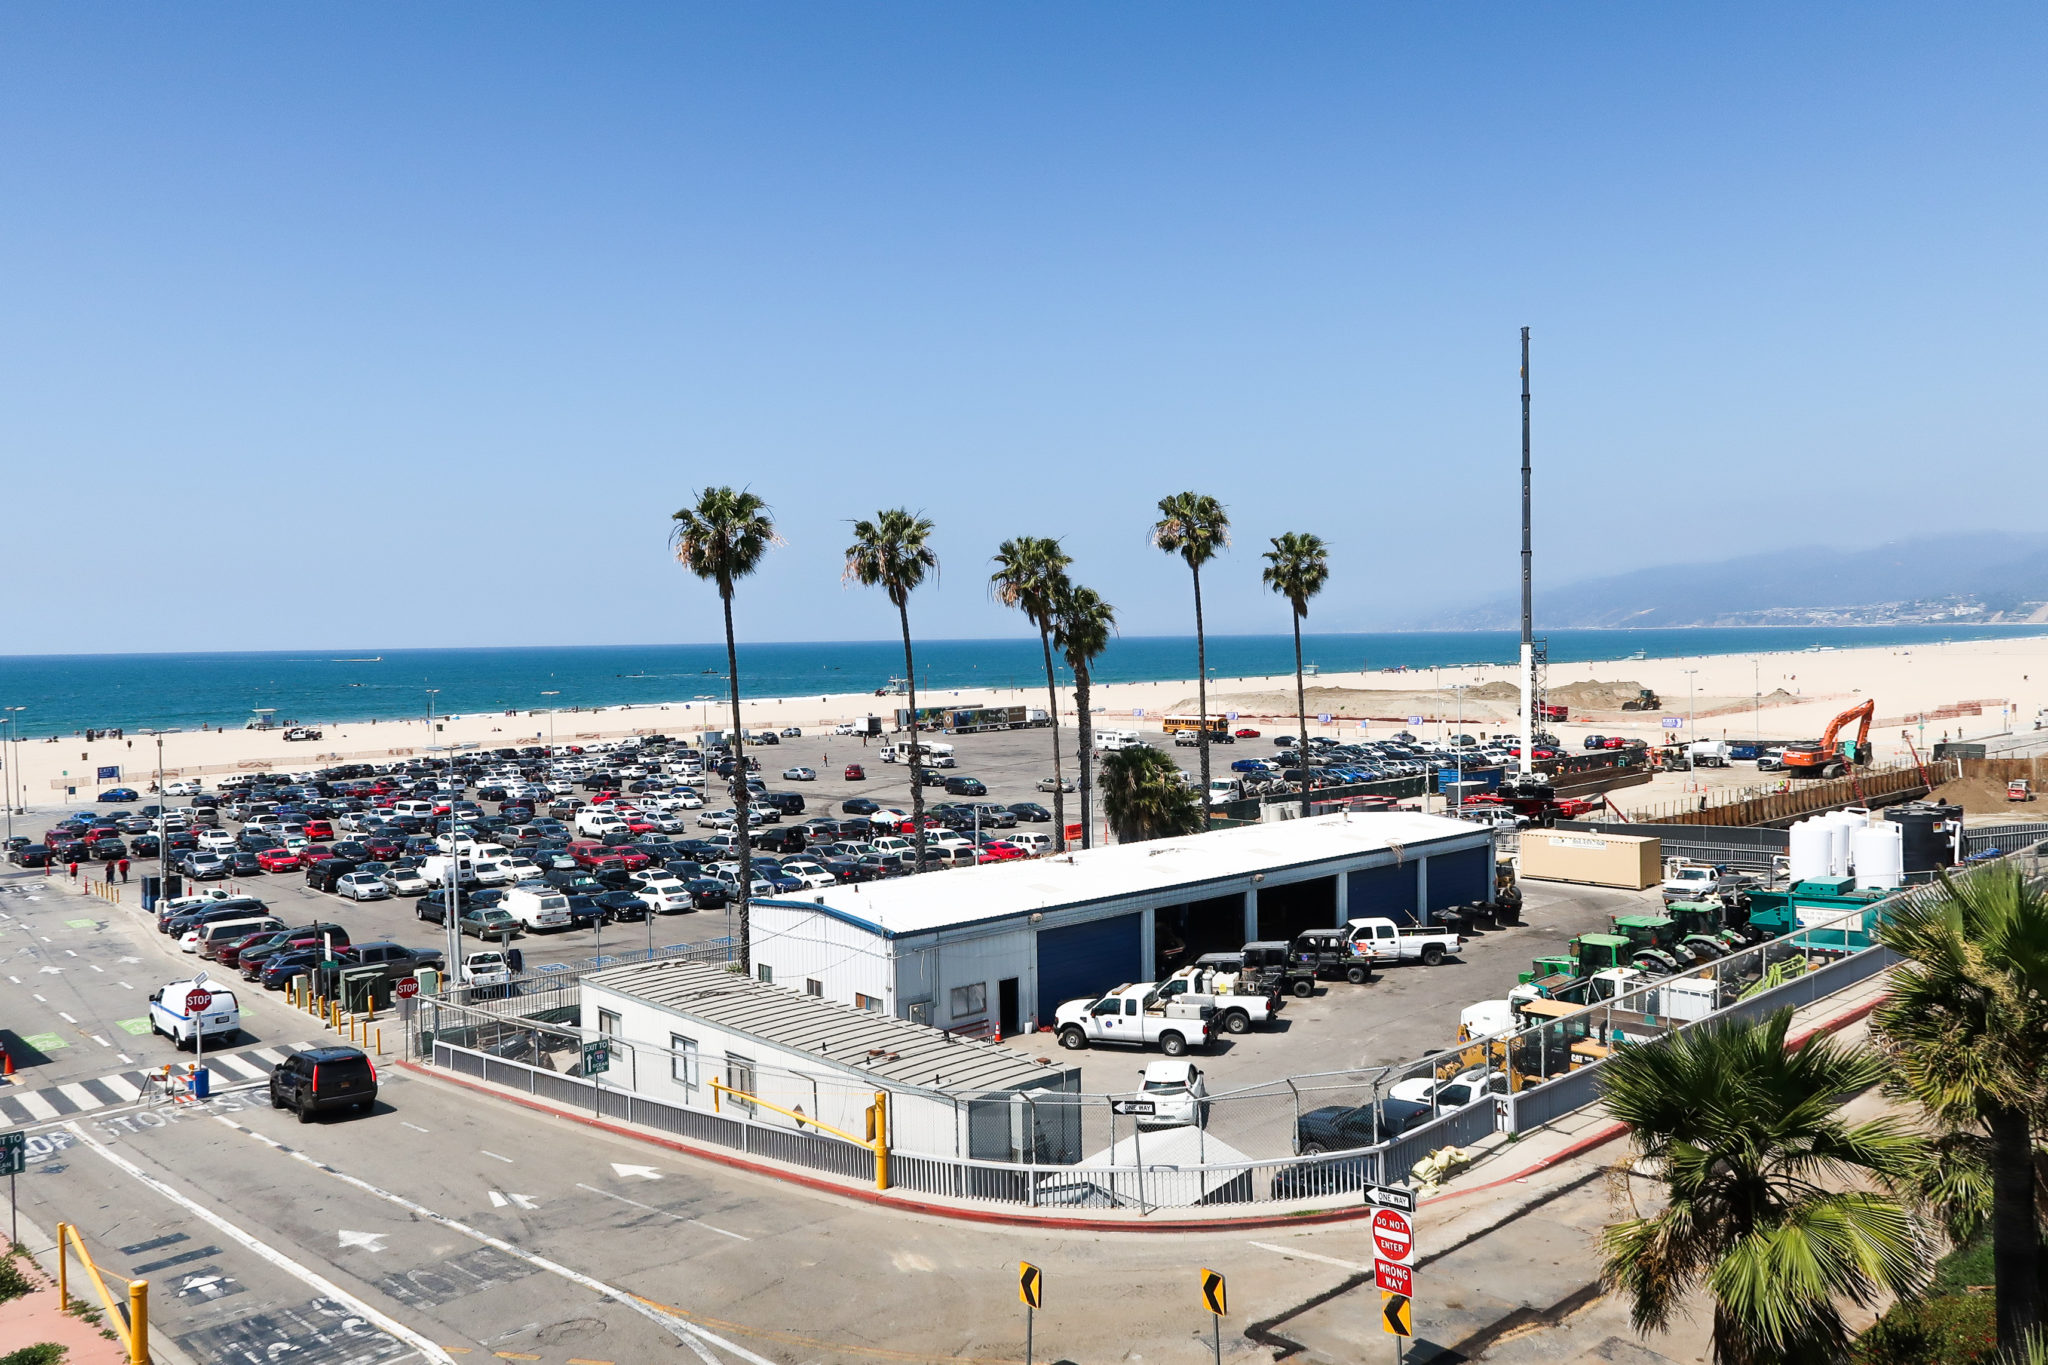 Plage de Santa Monica, Californie.